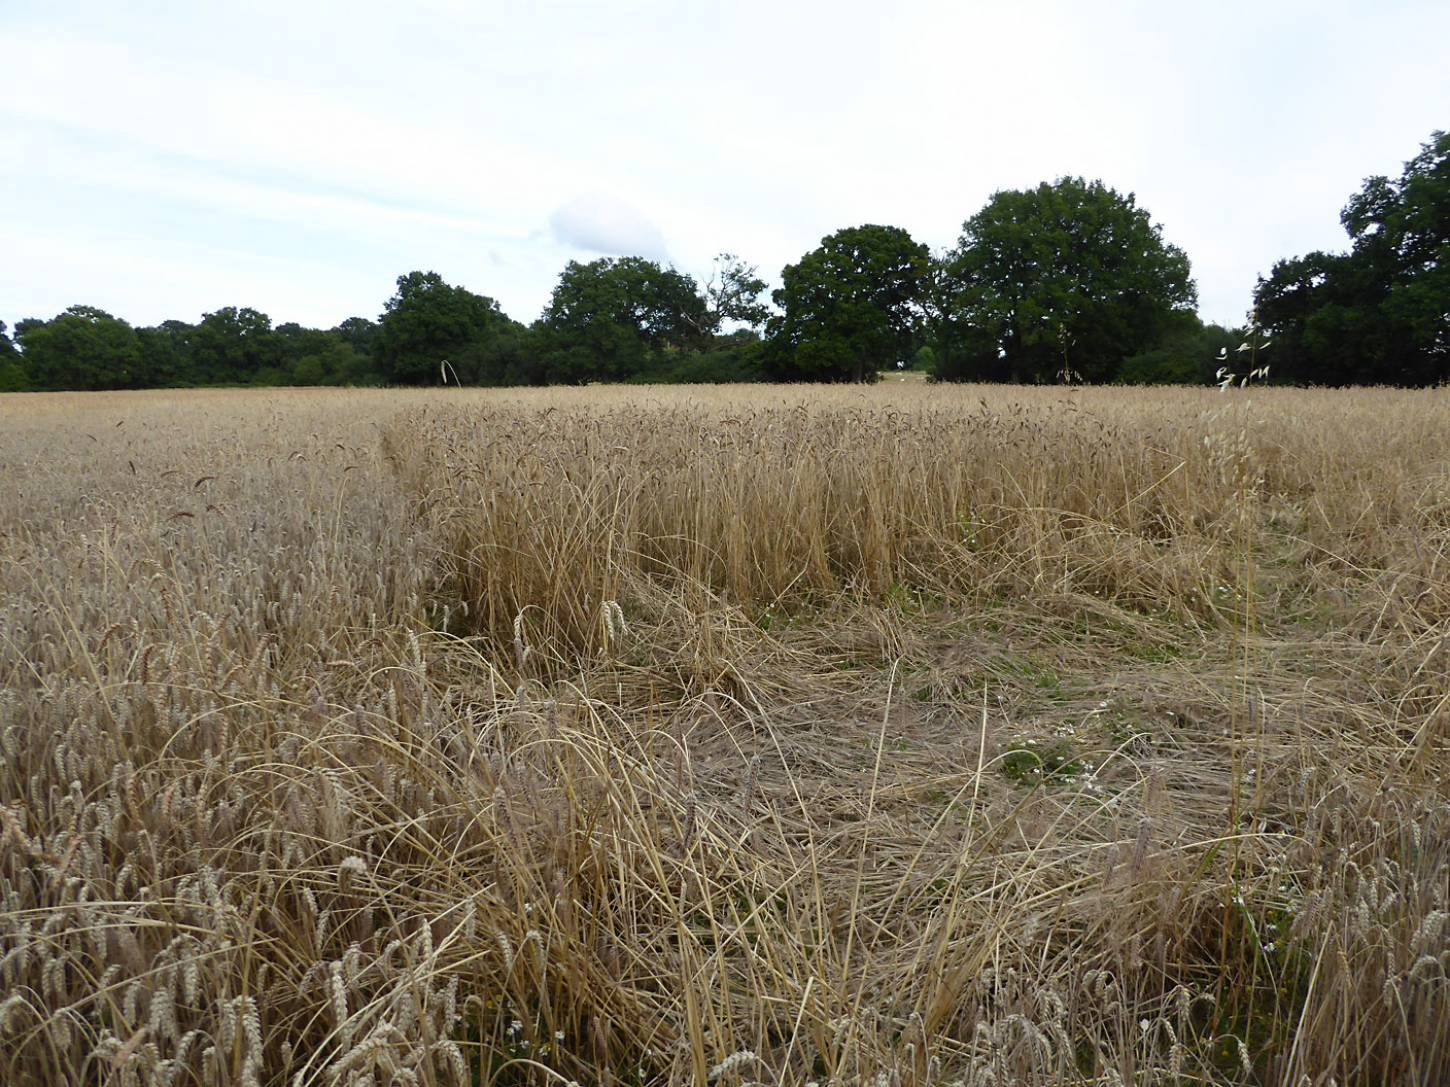 Purple Naked Spelt population in middle, lodged Blue Cone Rivet in front, Nelson left, farm review pre-harvest '17 - 6:34pm&nbsp;1<sup>st</sup>&nbsp;Aug.&nbsp;'17  <a href='http://maps.google.com/?t=h&q=51.208553,-0.086953&z=18&output=embed' target=_blank><img src='http://www.brockwell-bake.org.uk/img/marker.png' style='border:none;vertical-align:top' height=16px></a>